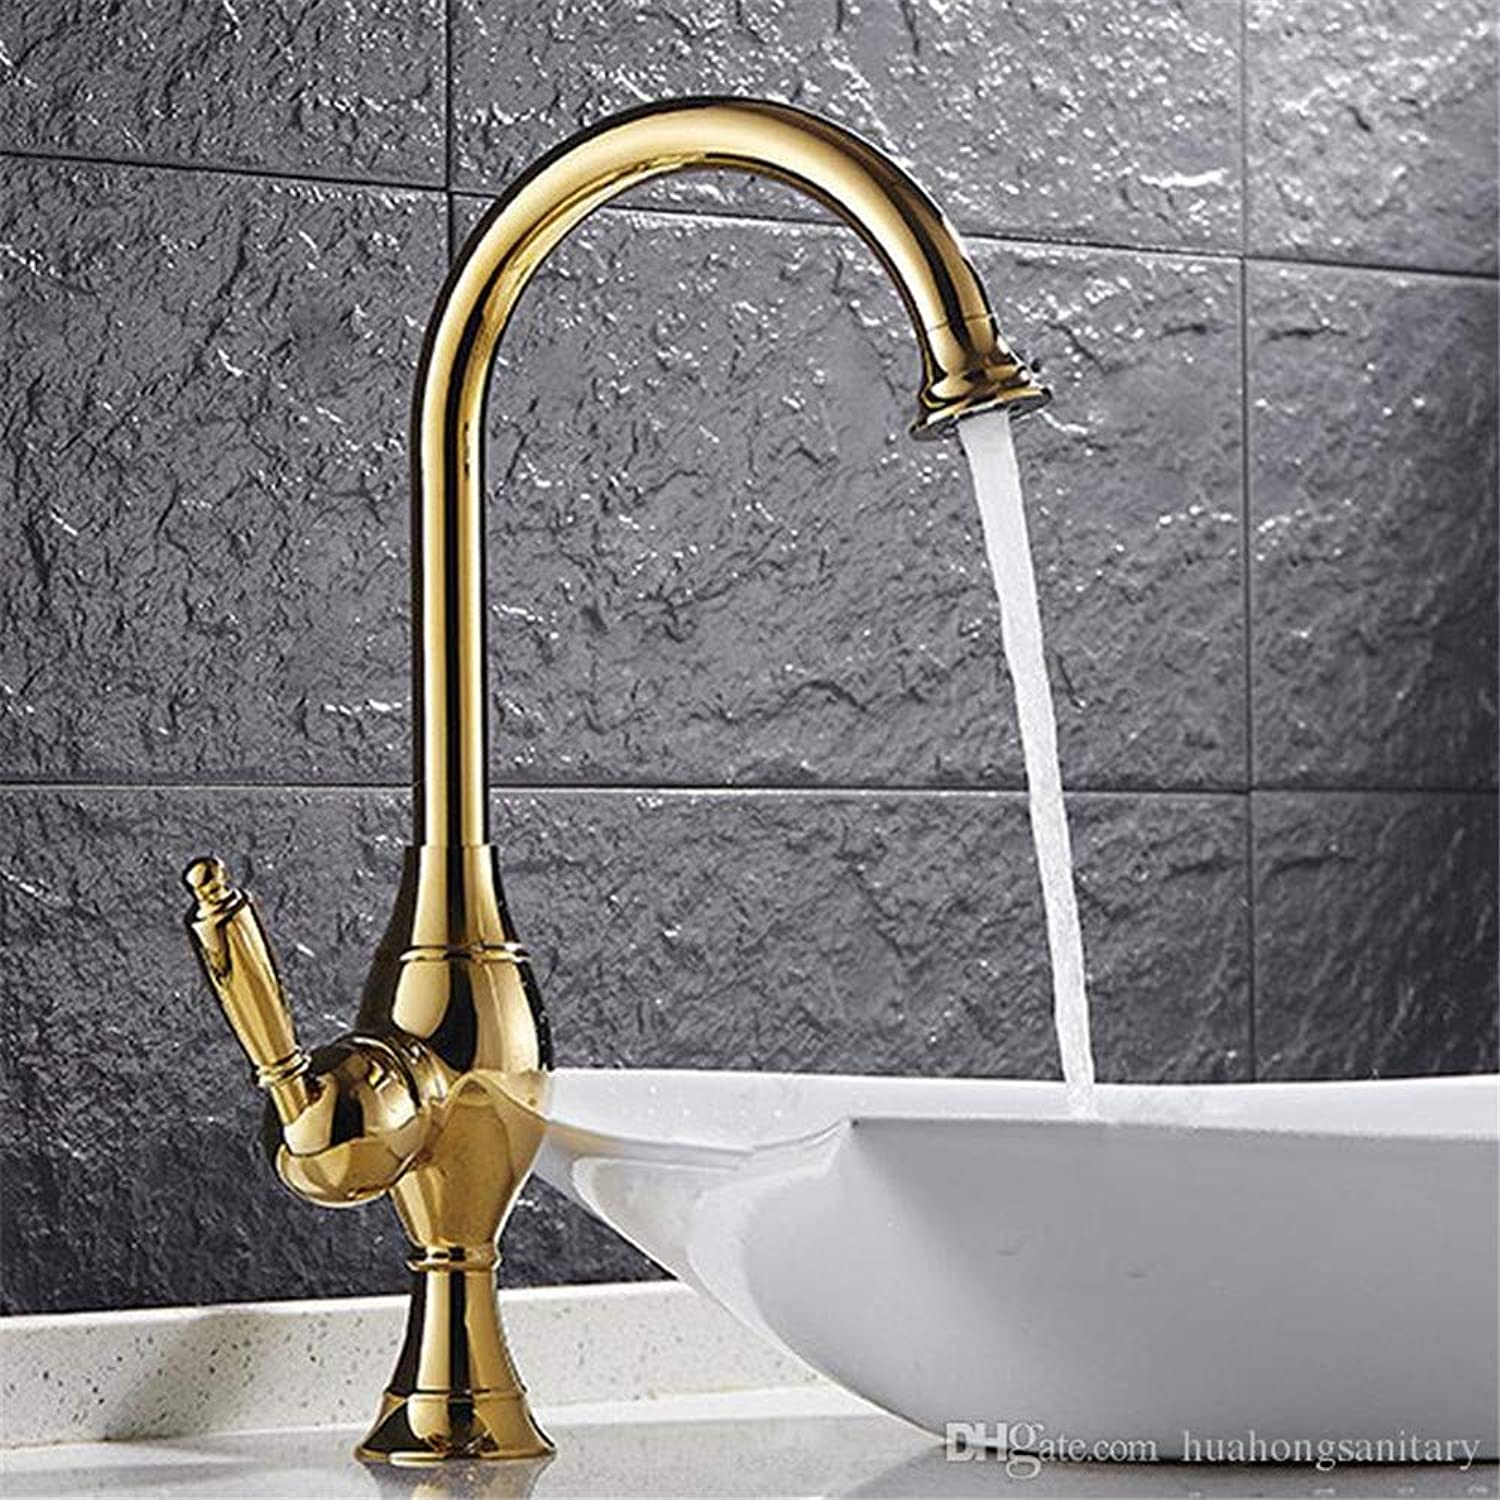 Decorry Wholesale and Retail gold Polished Single Lever Countertop Basin Sink Faucet 1 Handle Hole Mixer Tap Bathroom Hs413